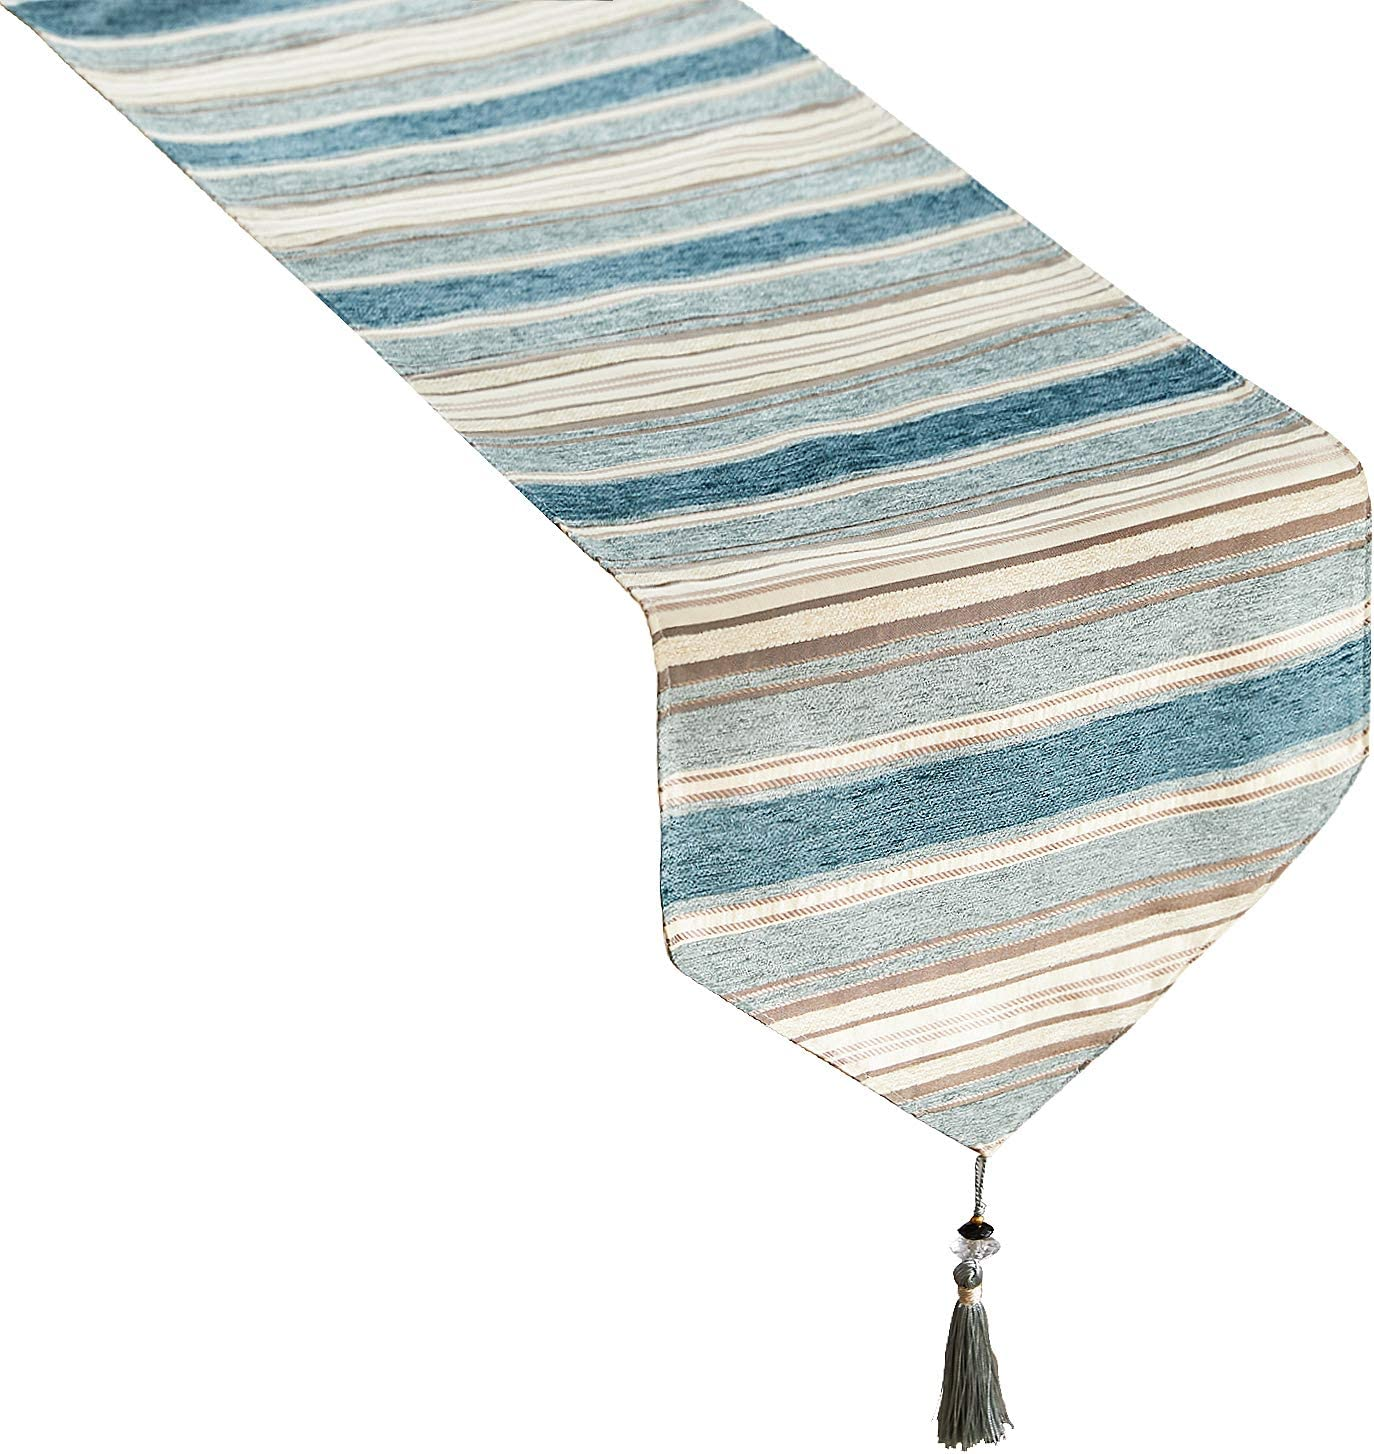 Top Finel Dining Table Runner 48 Inches, Washable Cotton Linen Coffee Table Runners with Tassels for Wedding Party Holiday Decorations, Teal